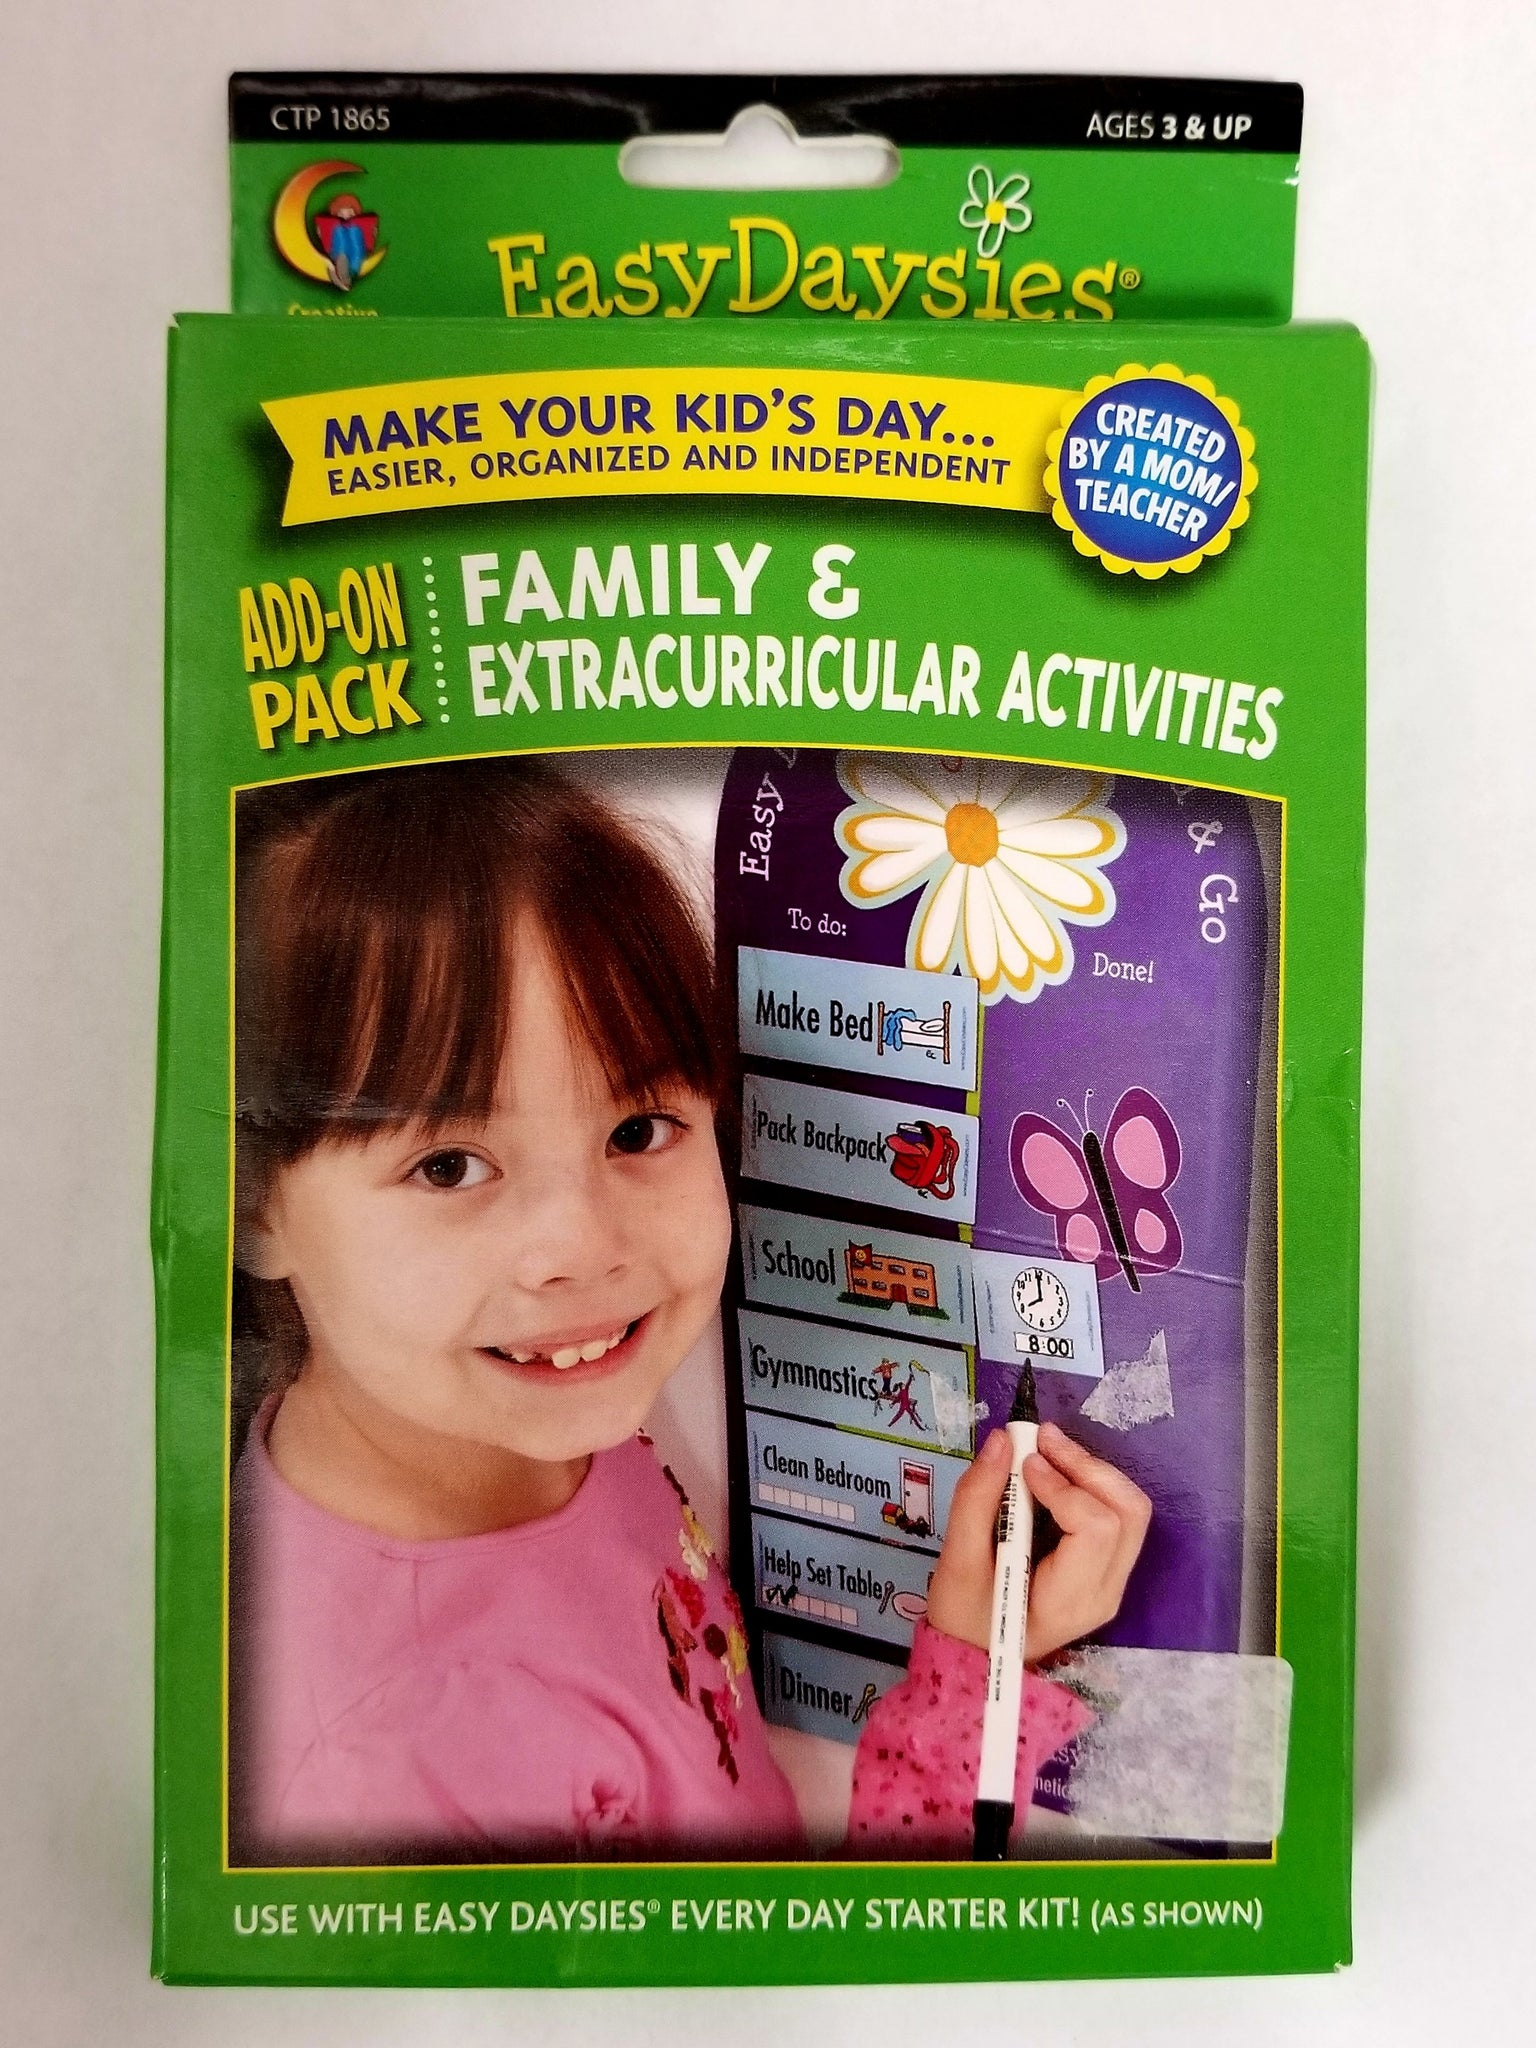 EasyDaysies Magnetic Schedule Add-On Pack Family & Extracurricular Activities (CTP 1865)